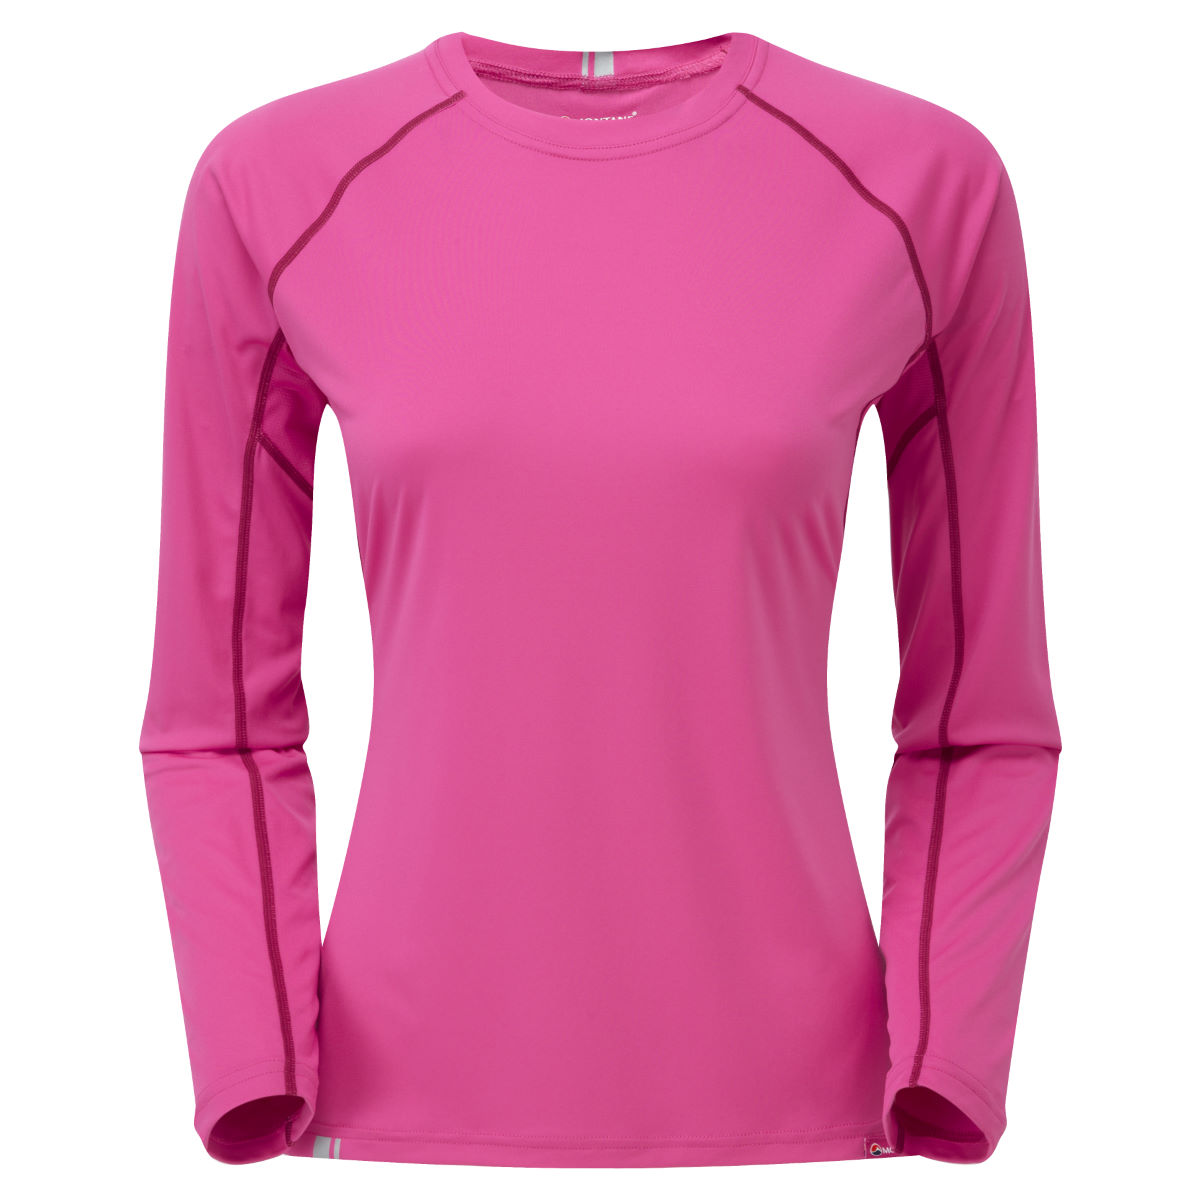 Montane - Women's Sonic Long Sleeve T-Shirt - XS